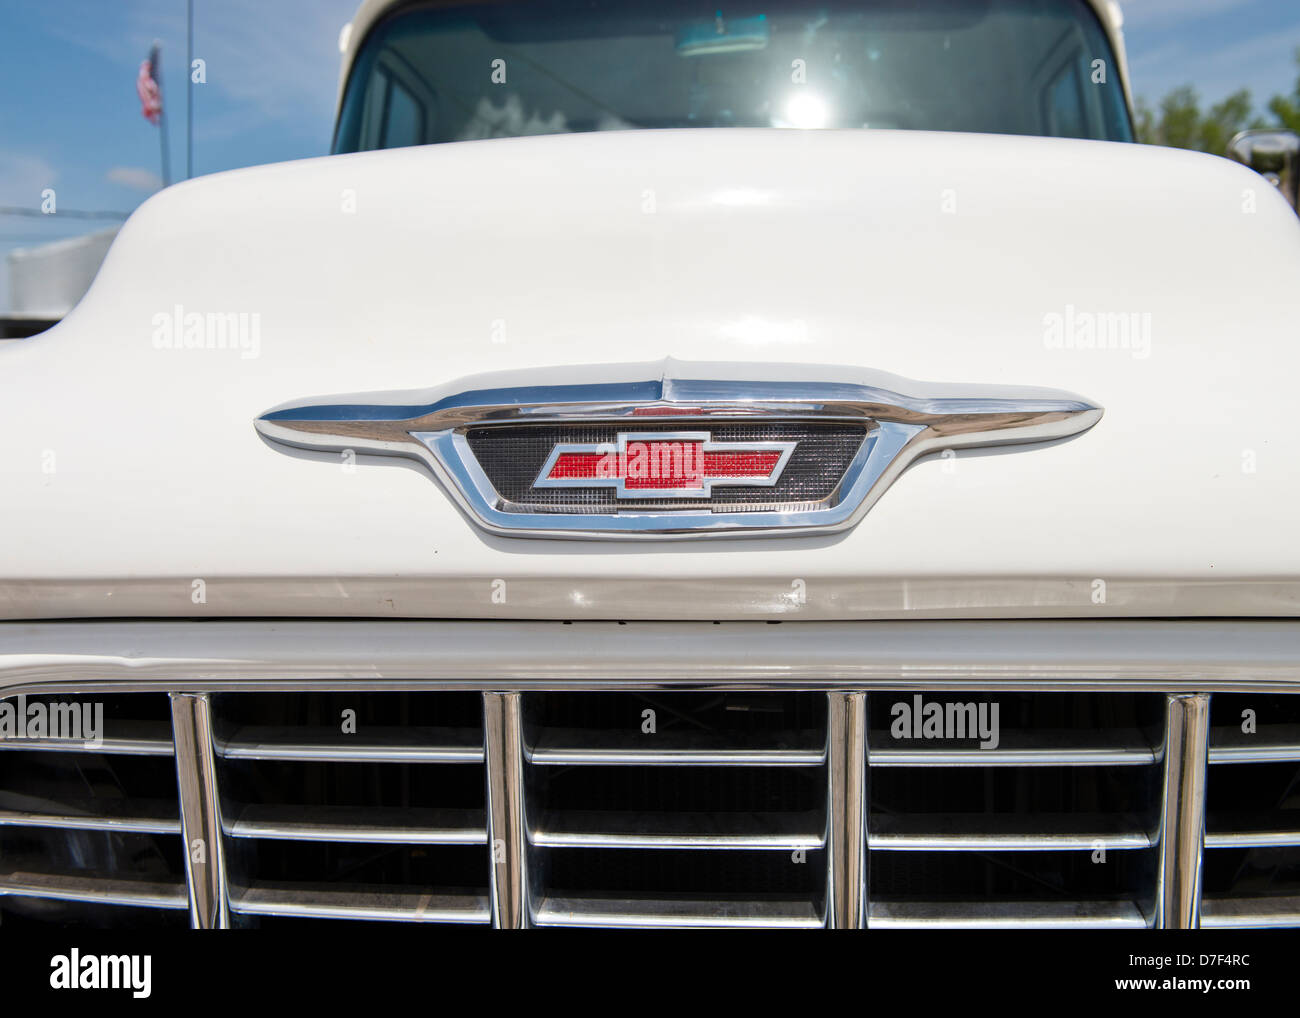 A white, classic 1955 Chevrolet V8 pickup front end closeup. American classic pickup, USA. - Stock Image